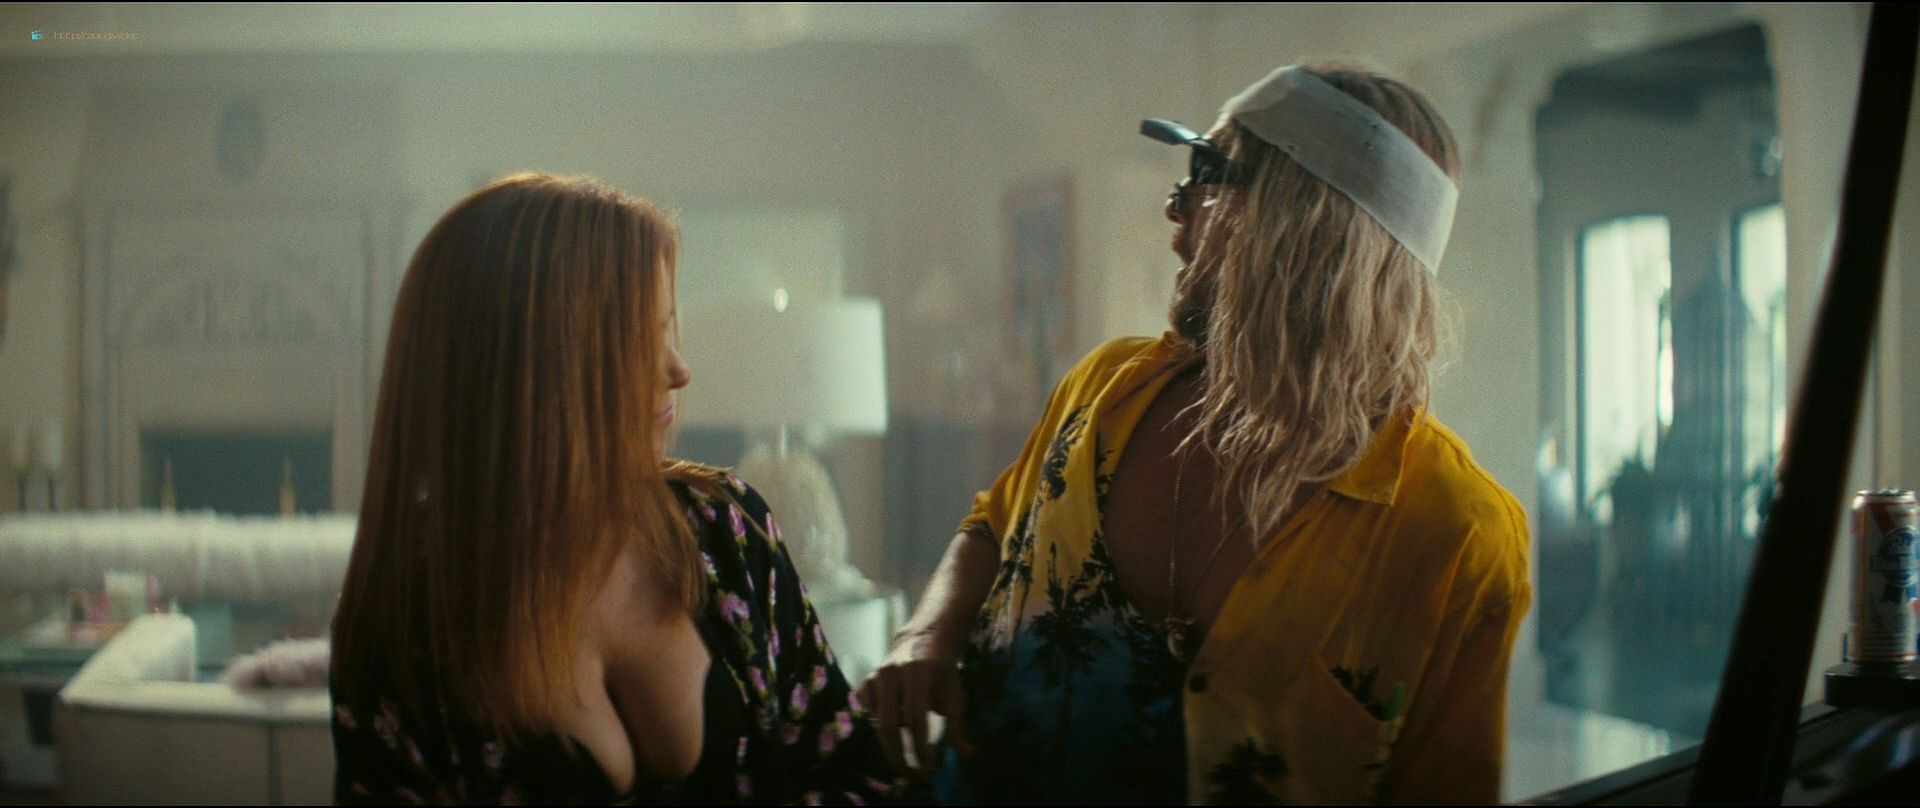 Isla Fisher hot and sexy others nude topless - The Beach Bum (2019) 1080p BluRay (8)